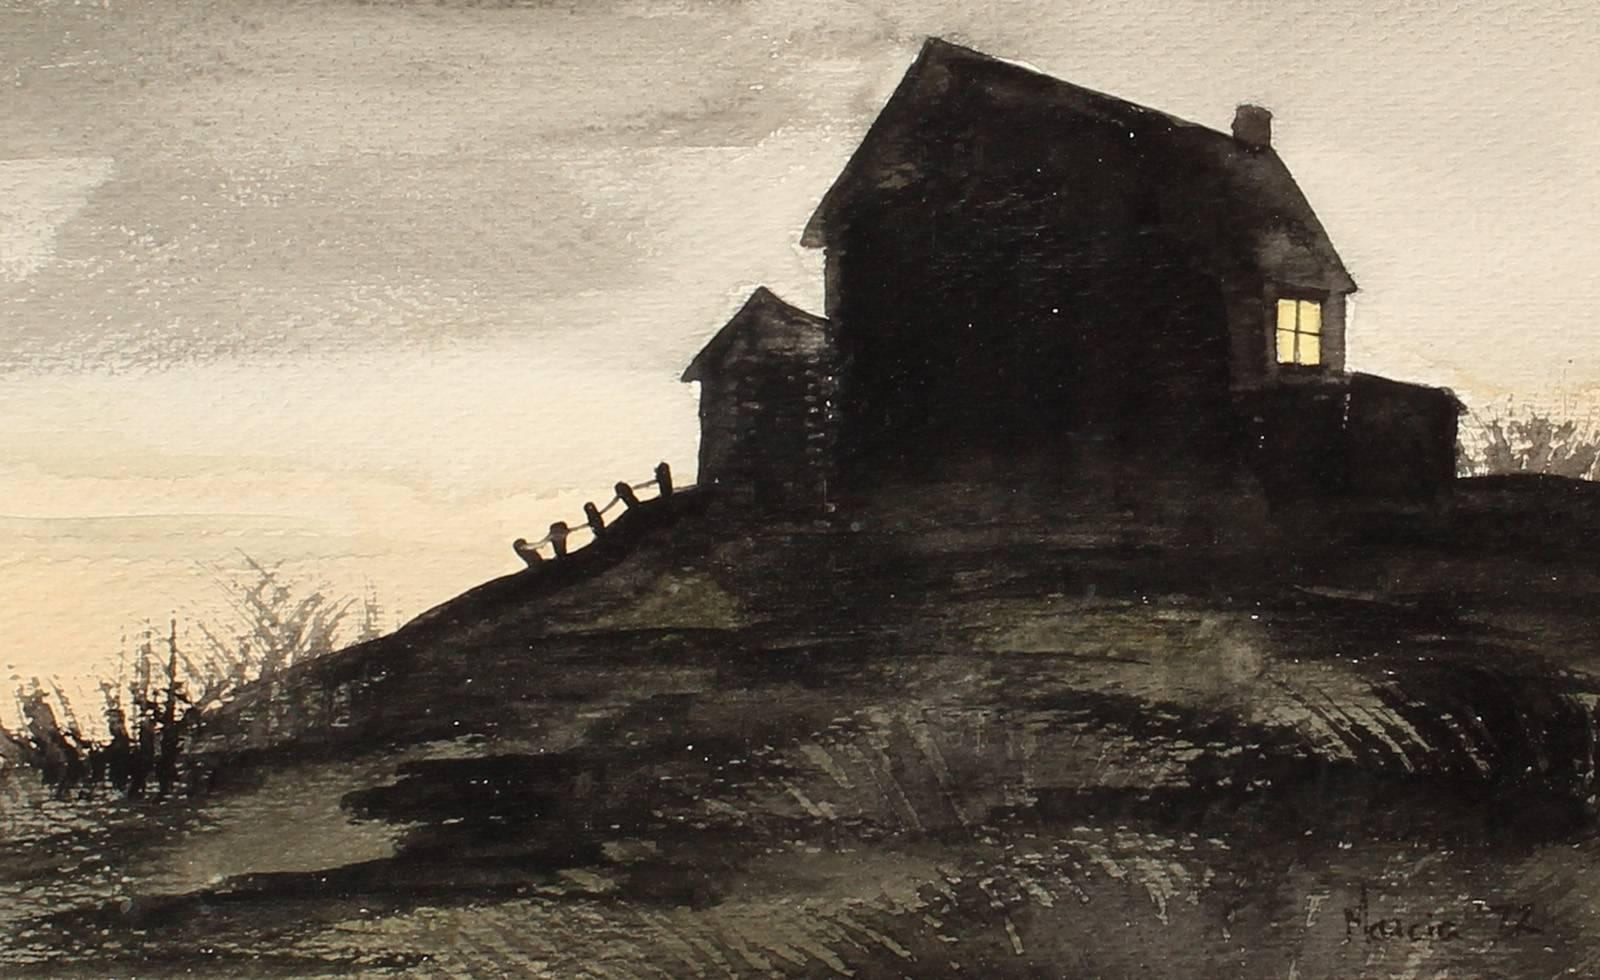 Nocturnal Landscape with House on a Hill